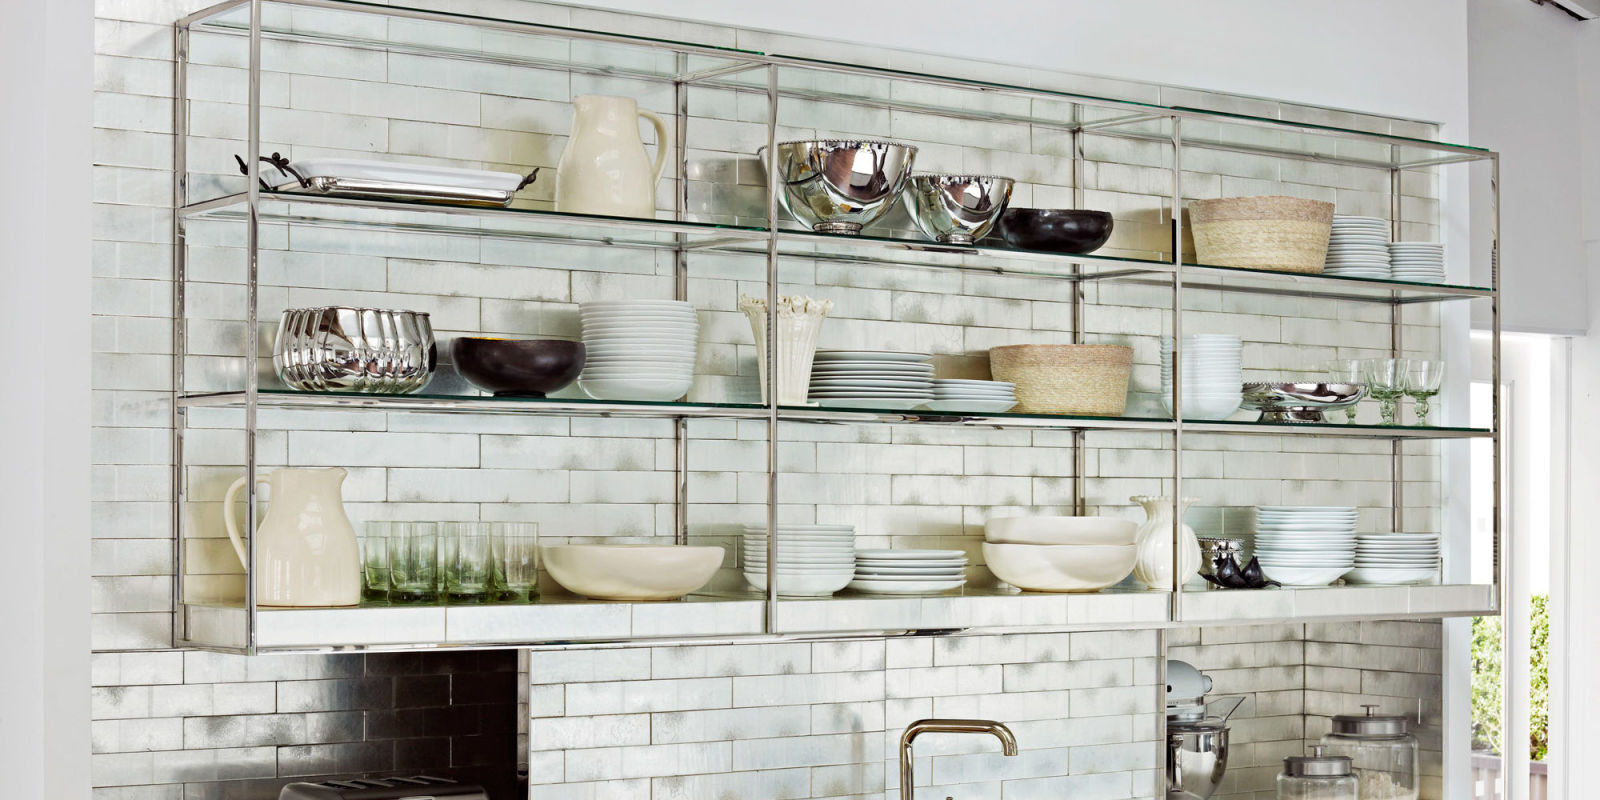 The Pros And Cons Of Open Shelving In The Kitchen: The Pros And Cons Of Open Shelving